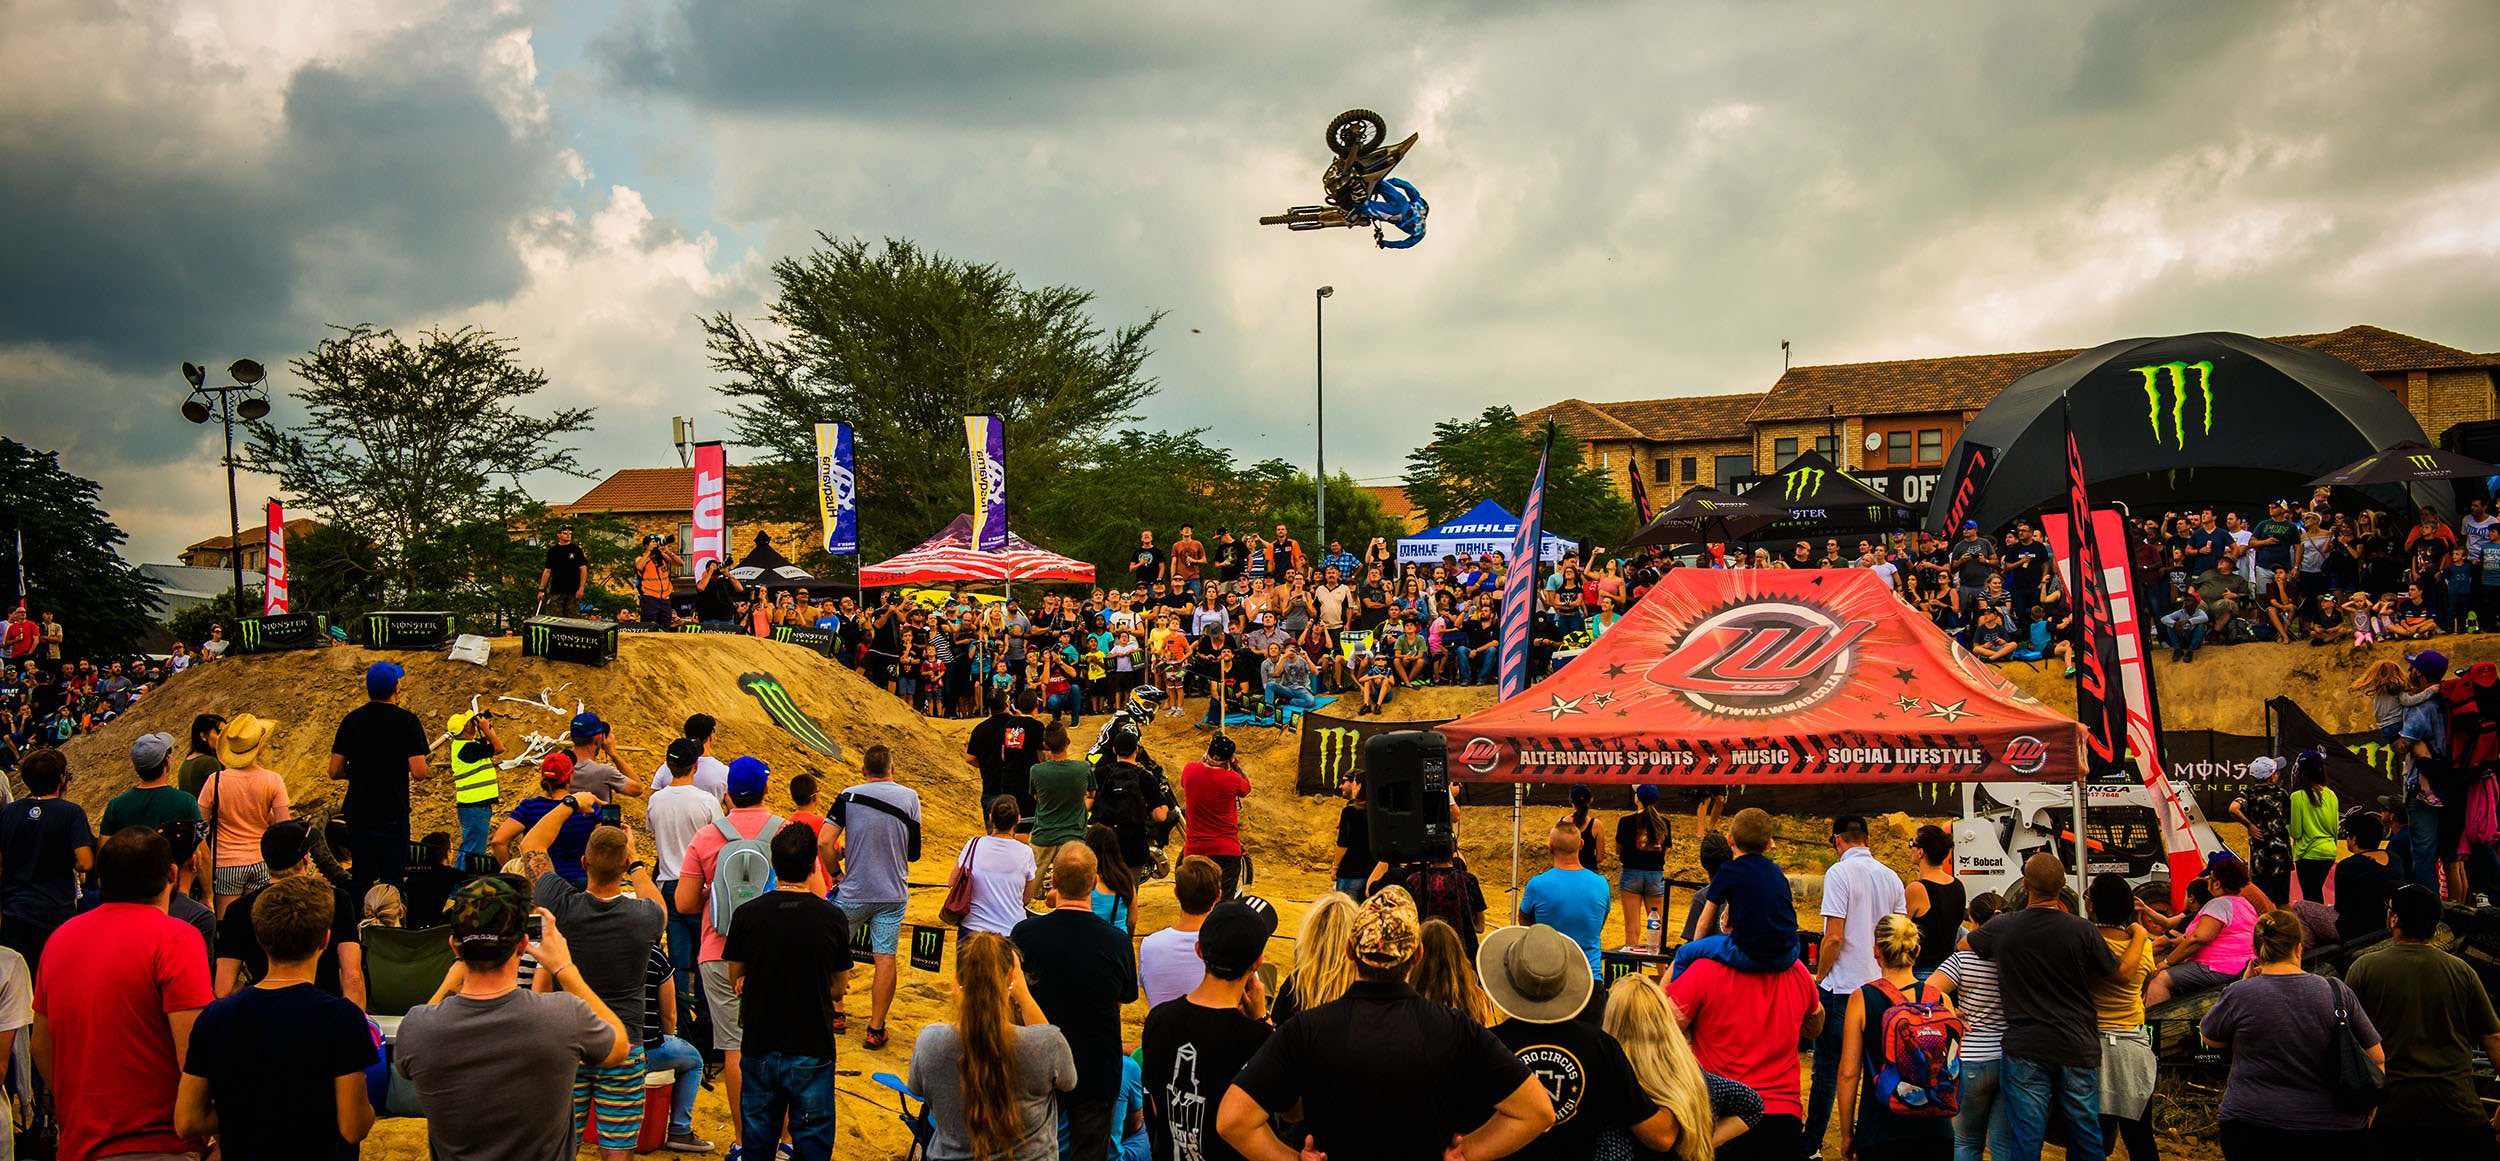 Motocross rider Caleb Tennant competing in the 2018 King of the Whip Bets Whip contest